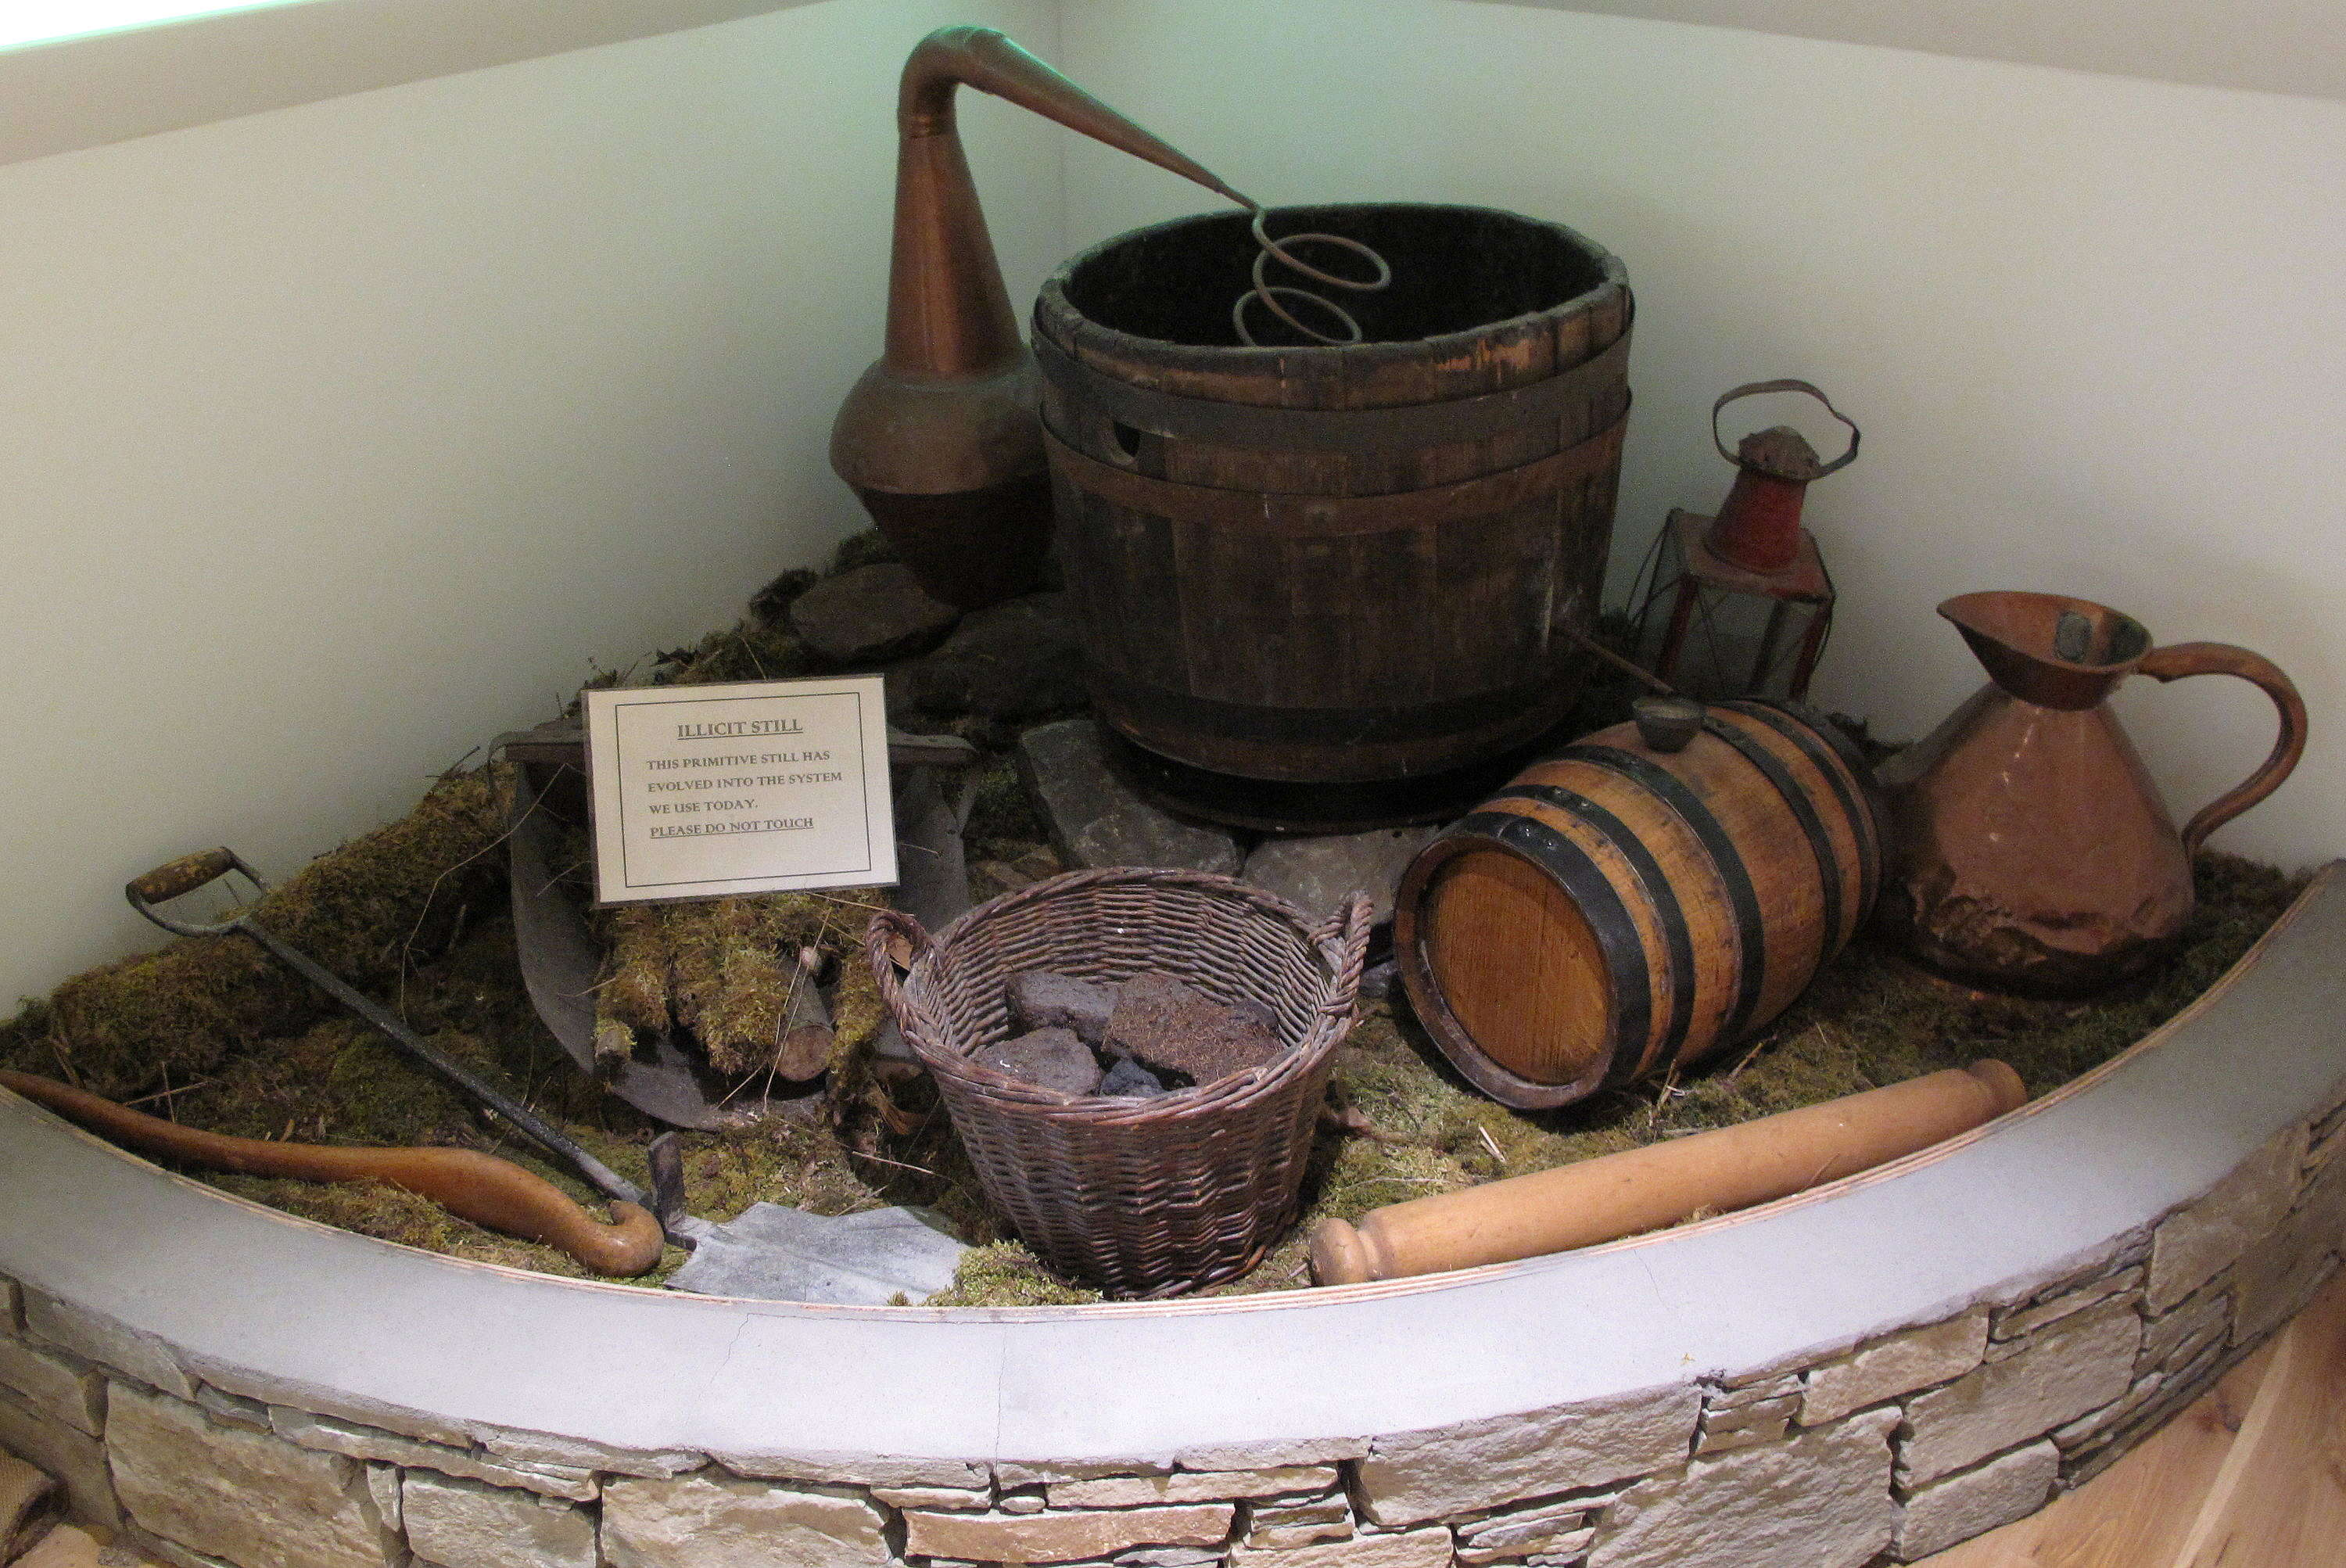 Types Of Whiskies Whiskey Still Diagram Old Smugglers Equitment For Making Whisky